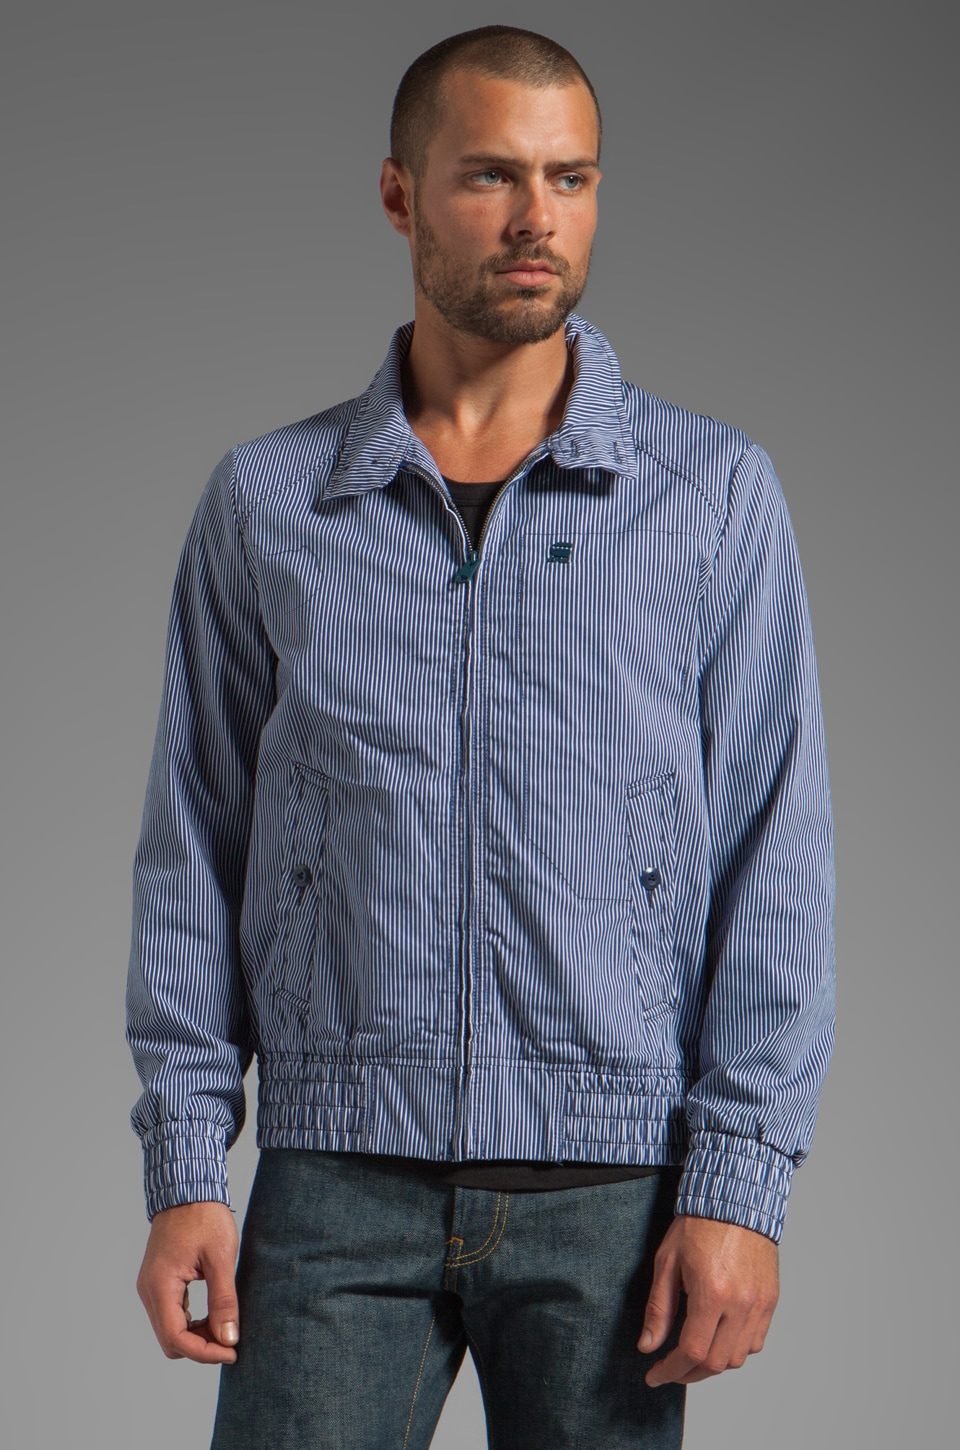 G-Star Fleet Jacket in Swedish Blue